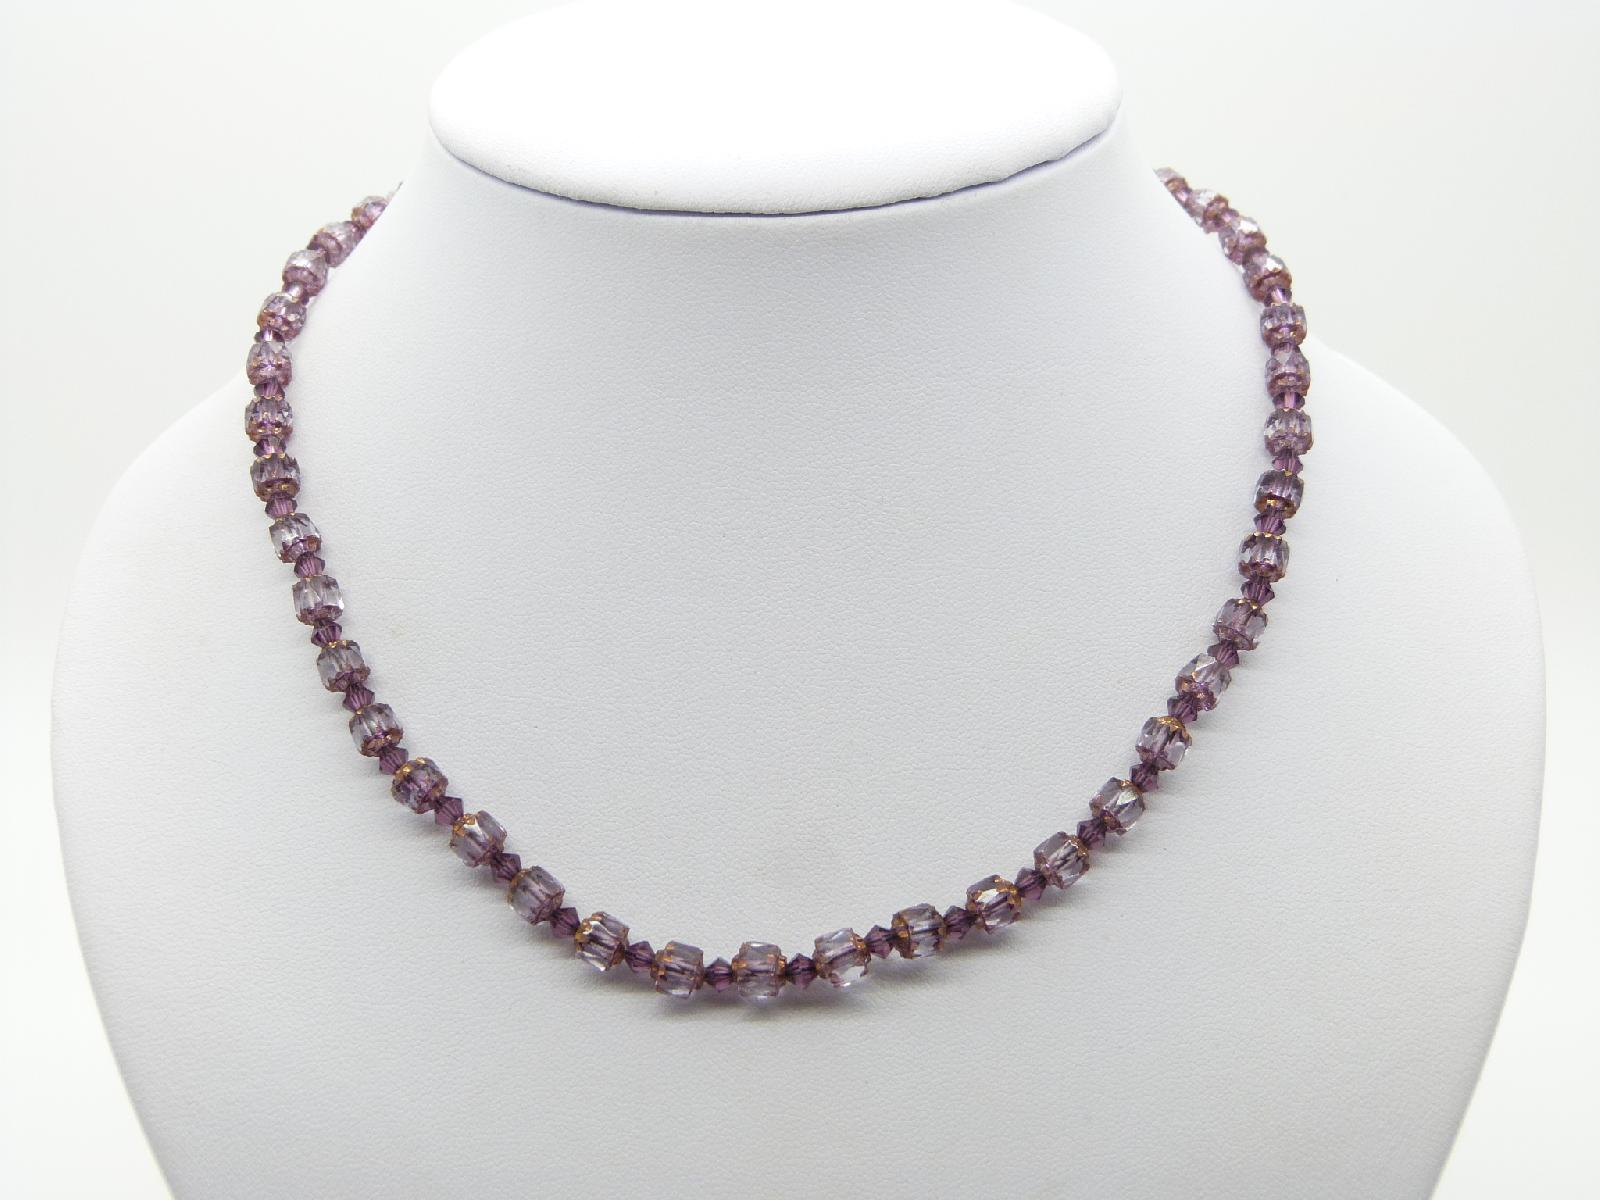 Vintage 30s Style Pretty Purple Glass Faceted Bead Necklace 43cms